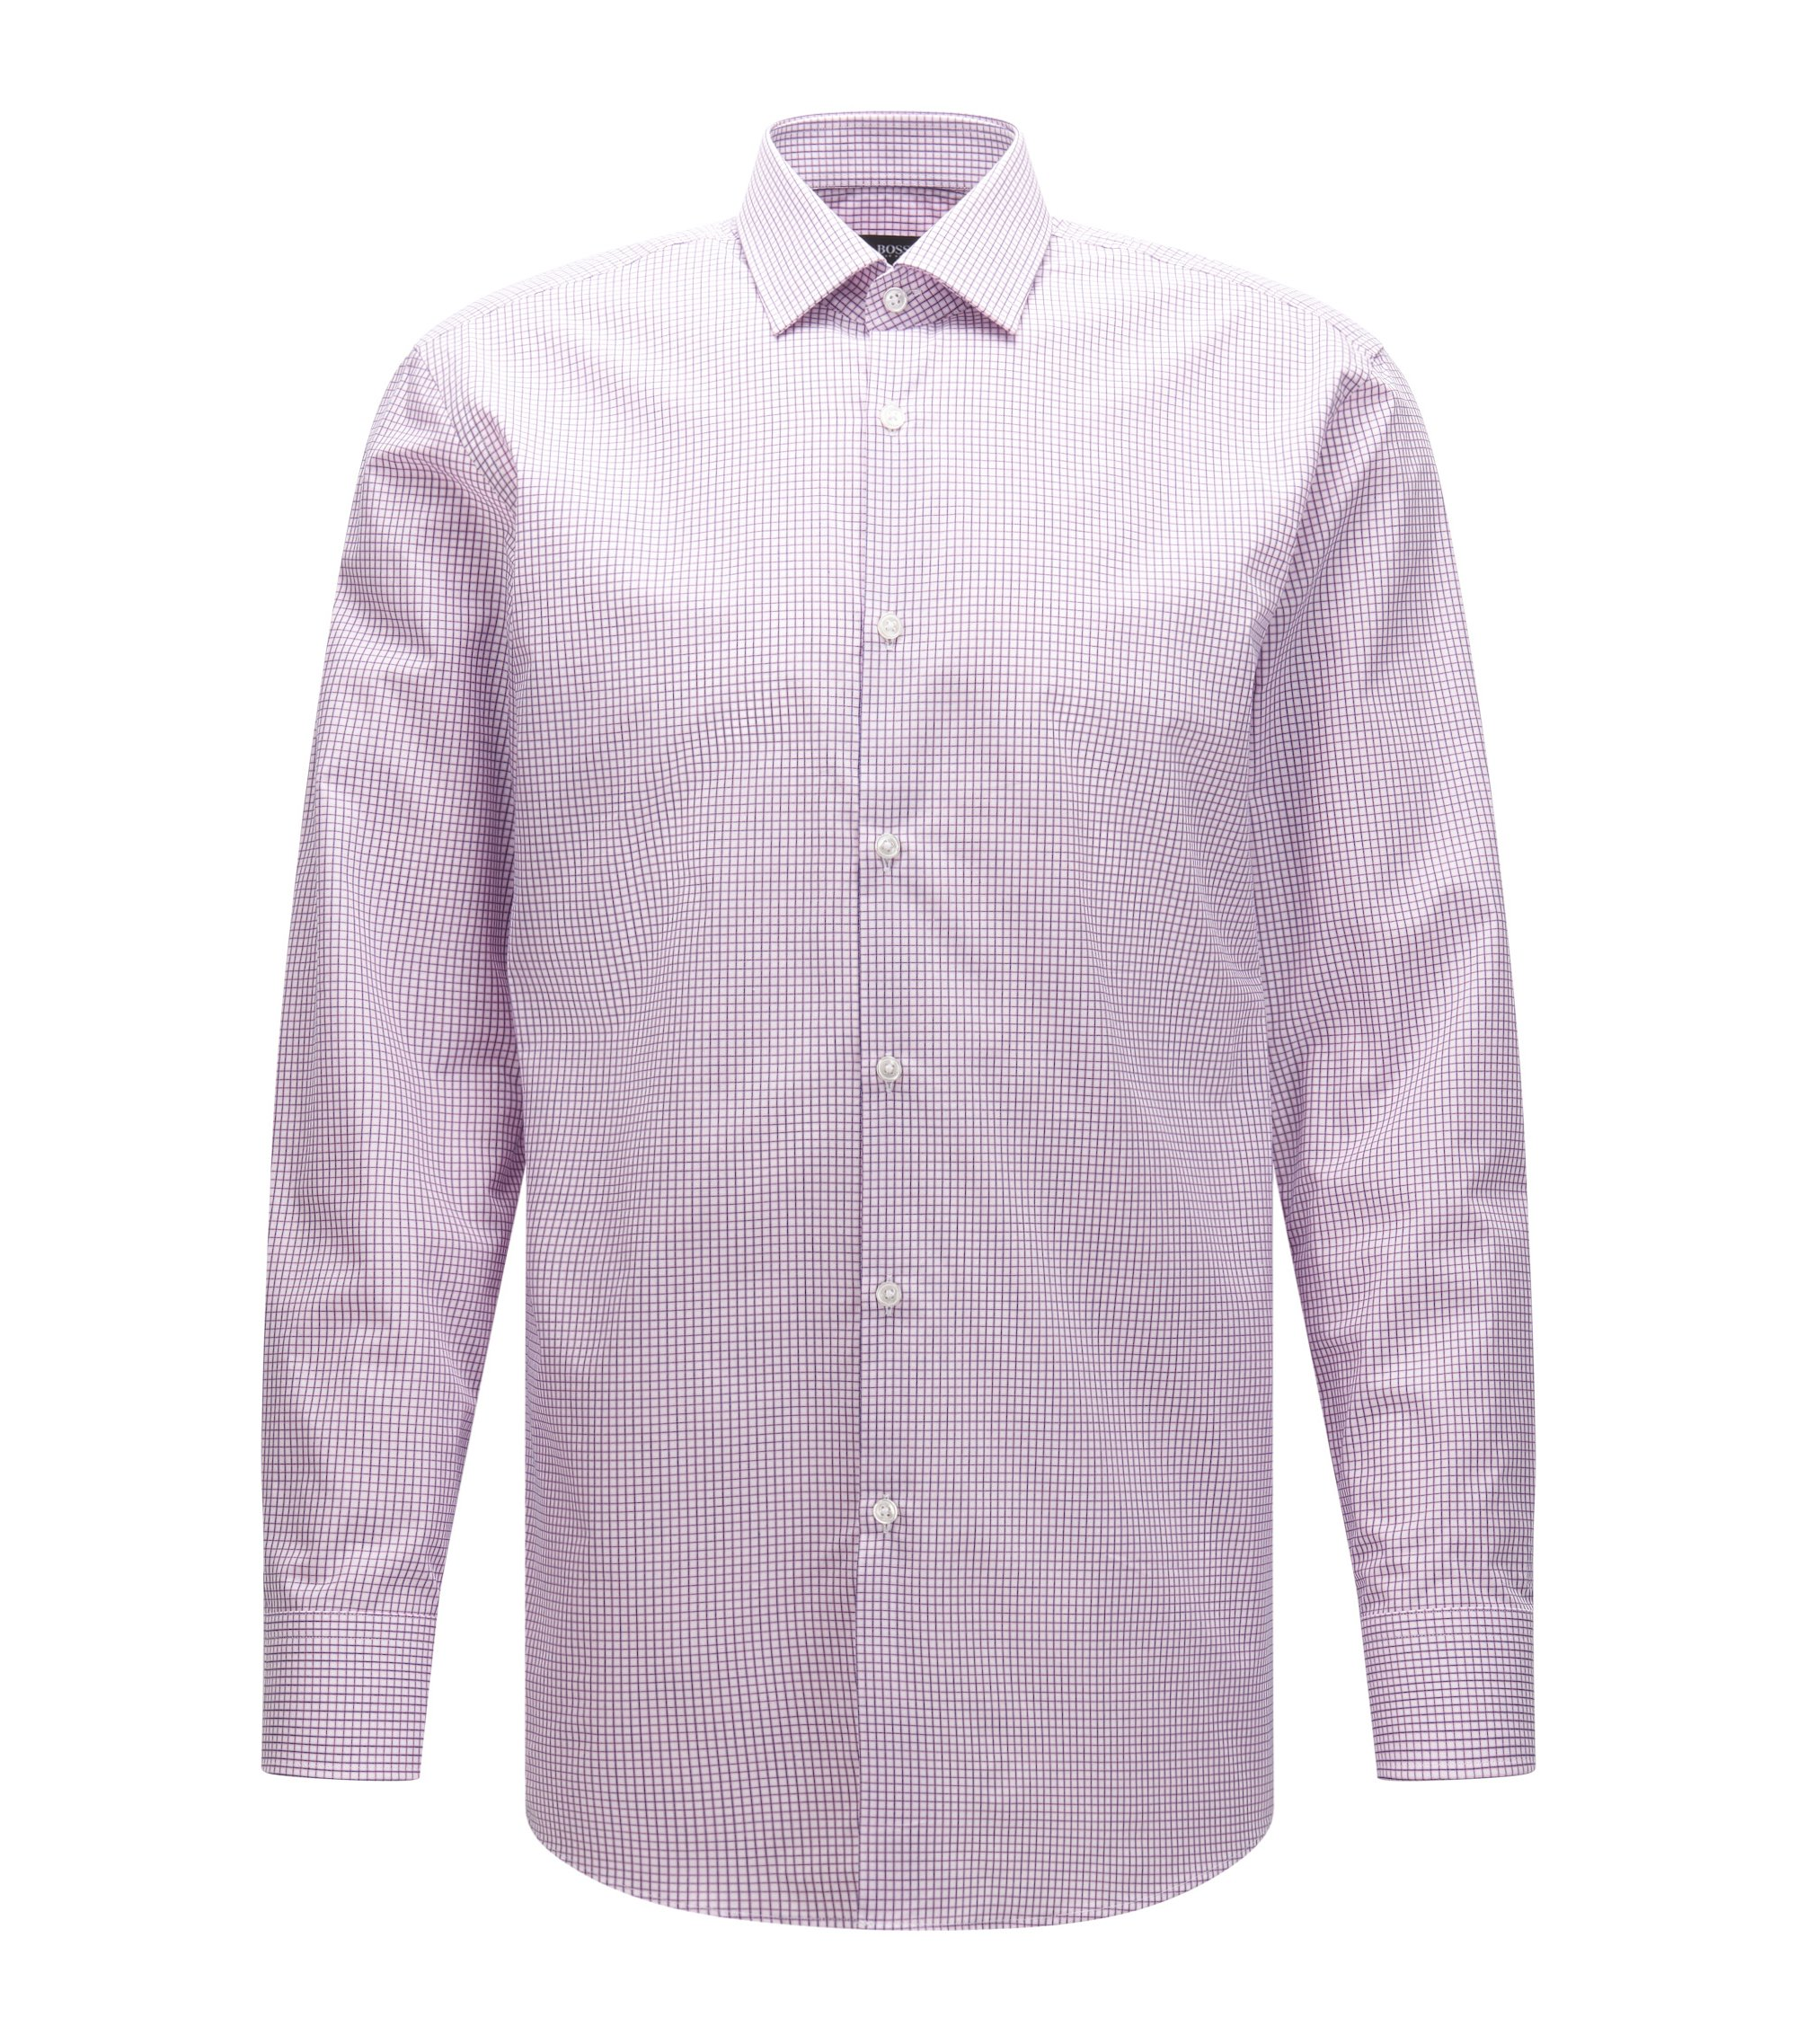 Checked Cotton Dress Shirt, Sharp Fit | Marley US, light pink